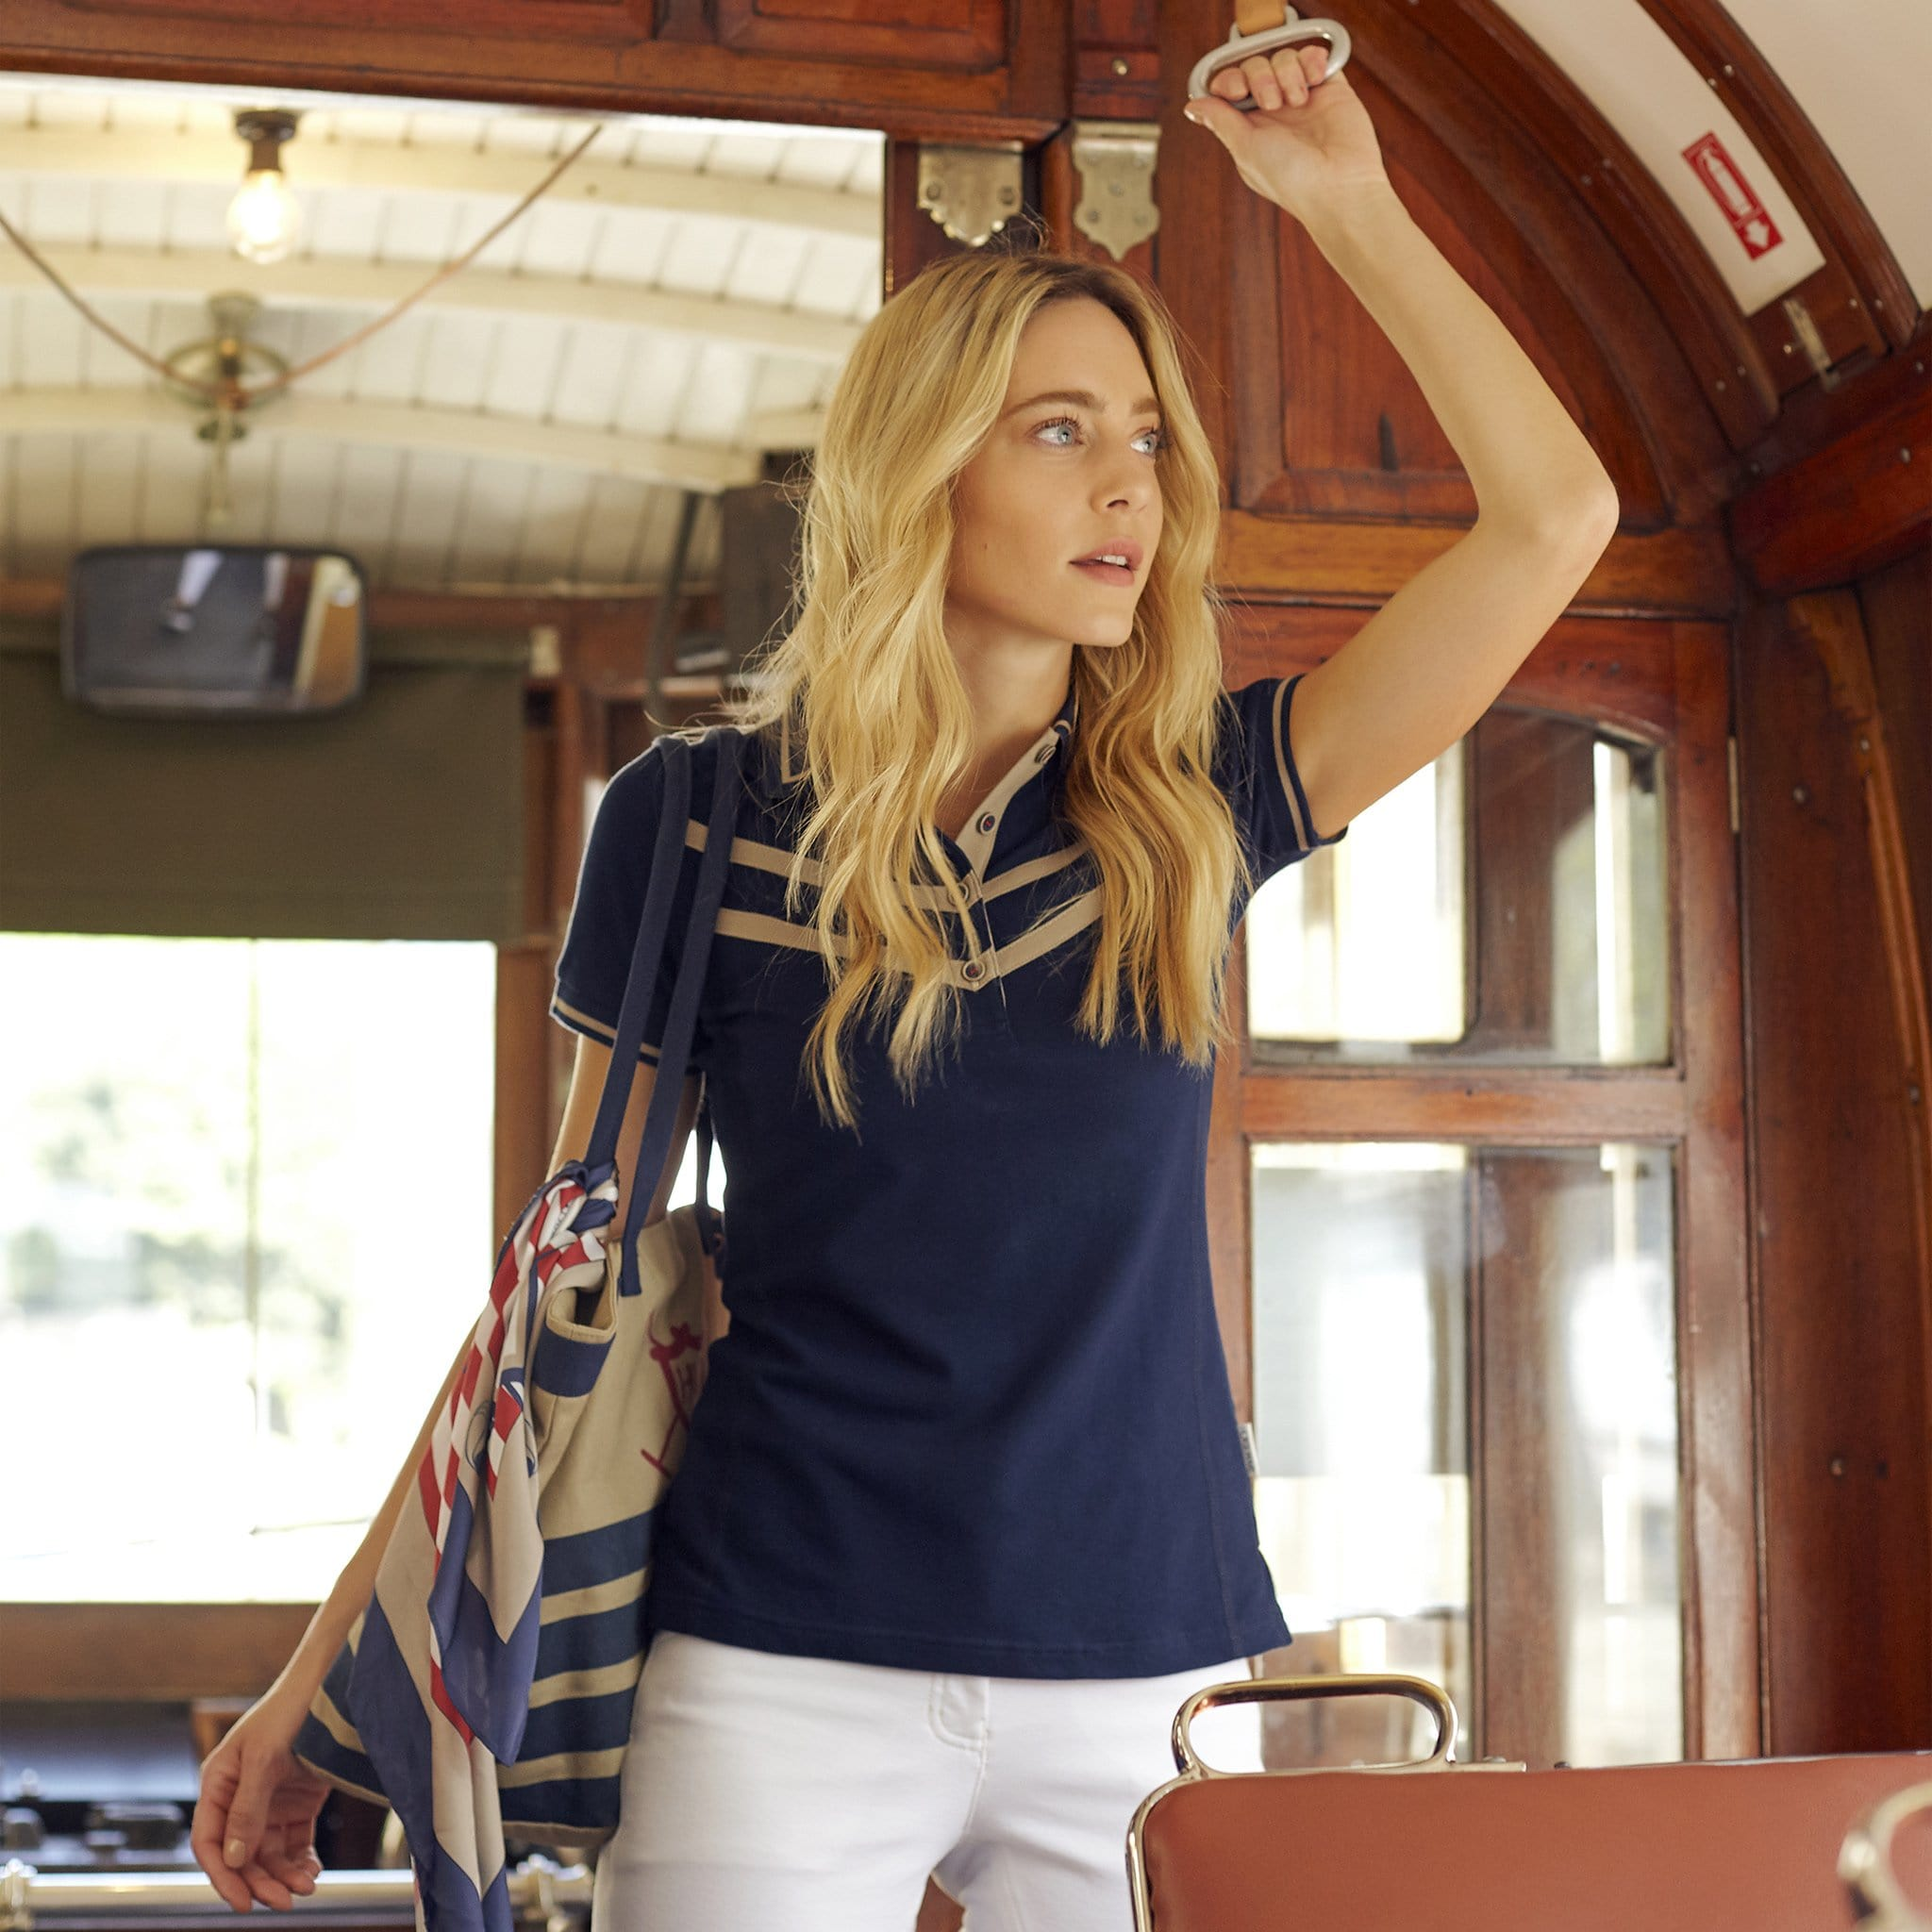 Horseware Clara Polo Shirt CJNBLP Navy On Model On Boat With Bag